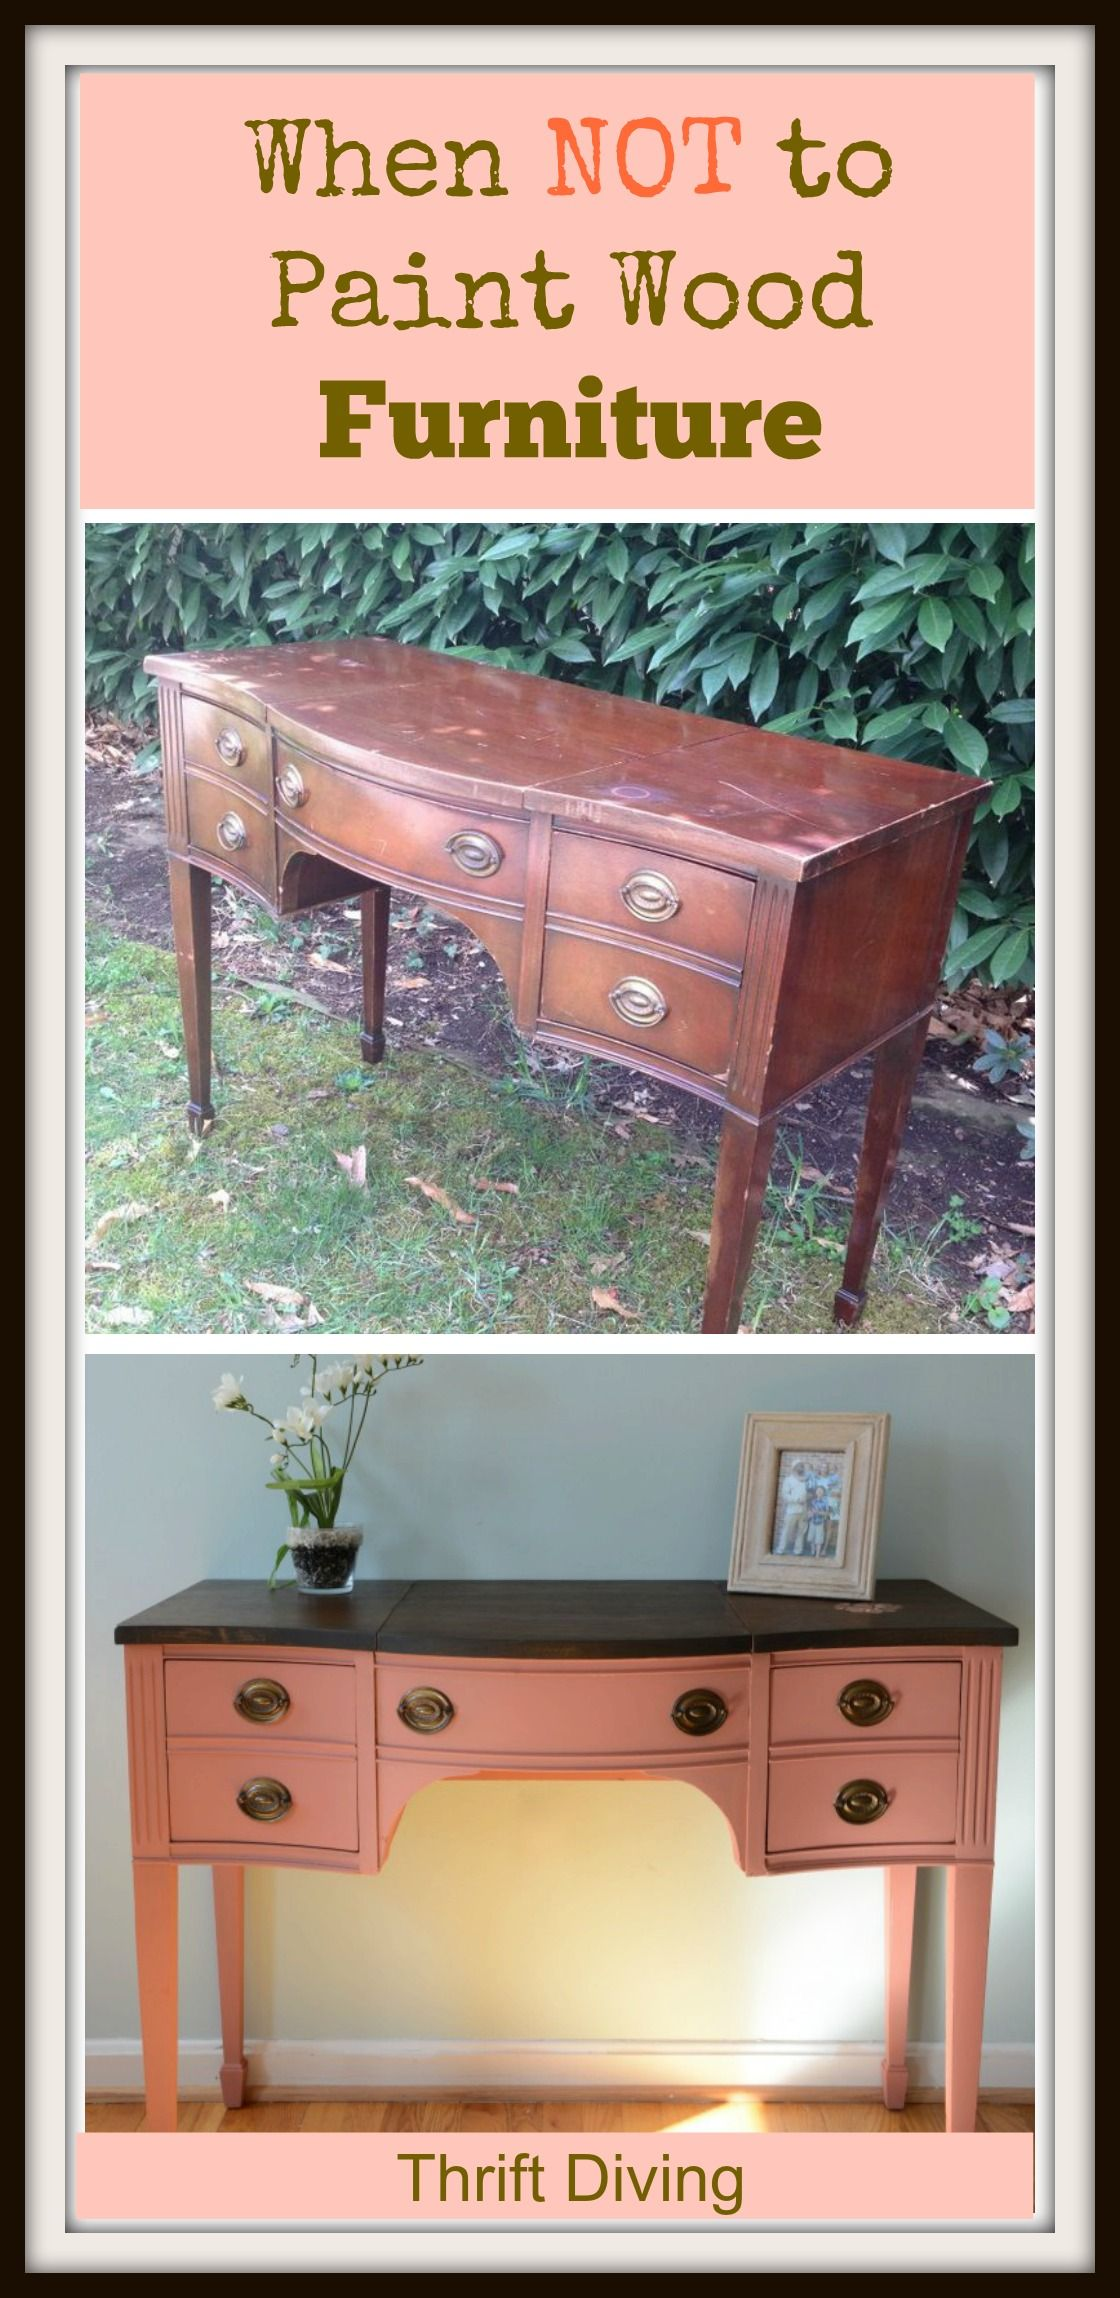 When Should You Not Paint Wood Furniture Thrift Diving Blog Painting Wood Furniture Redo Furniture Furniture Projects